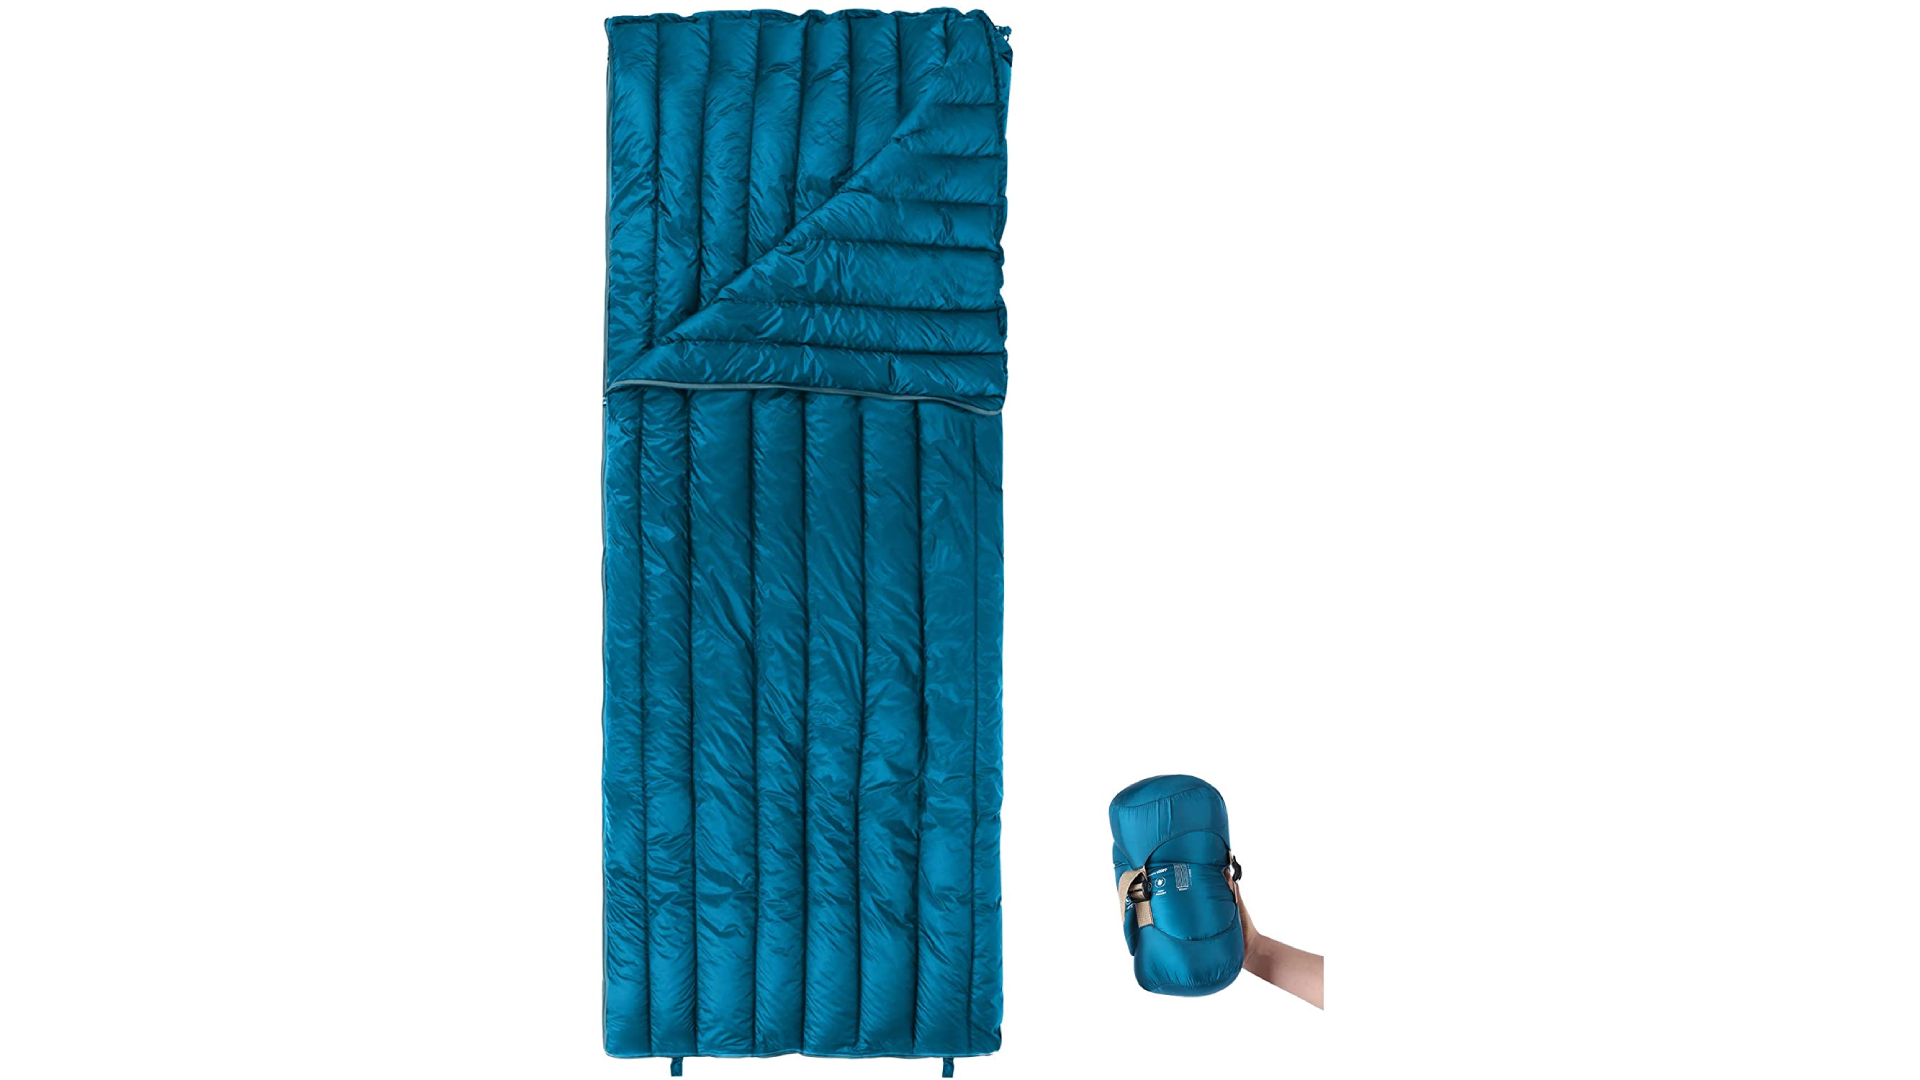 a sleeping bag with a hand holding it rolled up